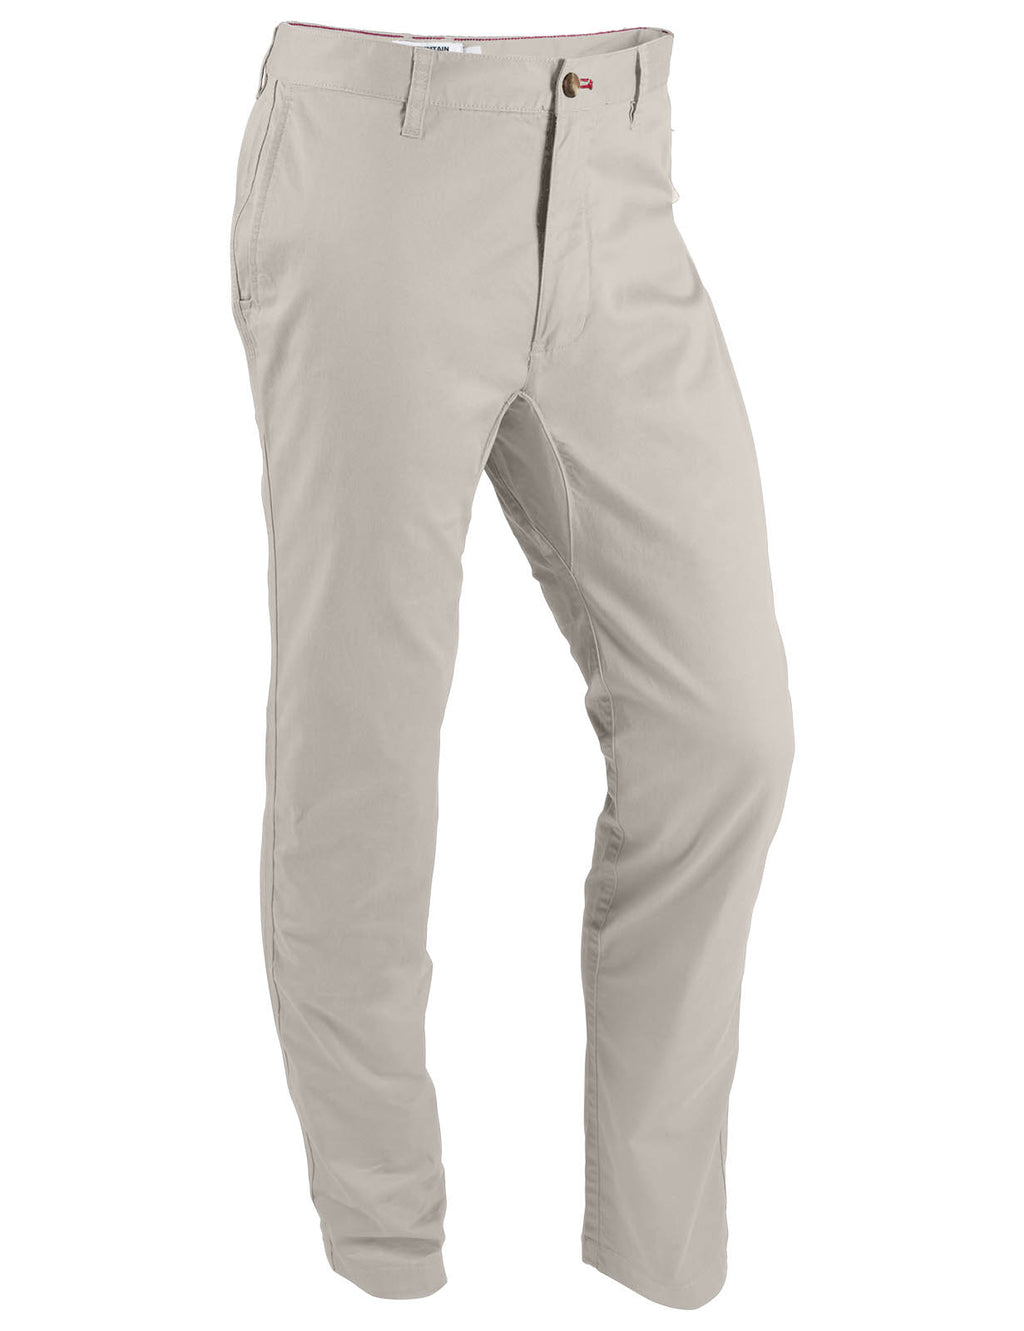 Men's Jackson Chino Pant | Slim Tailored Fit / Stone